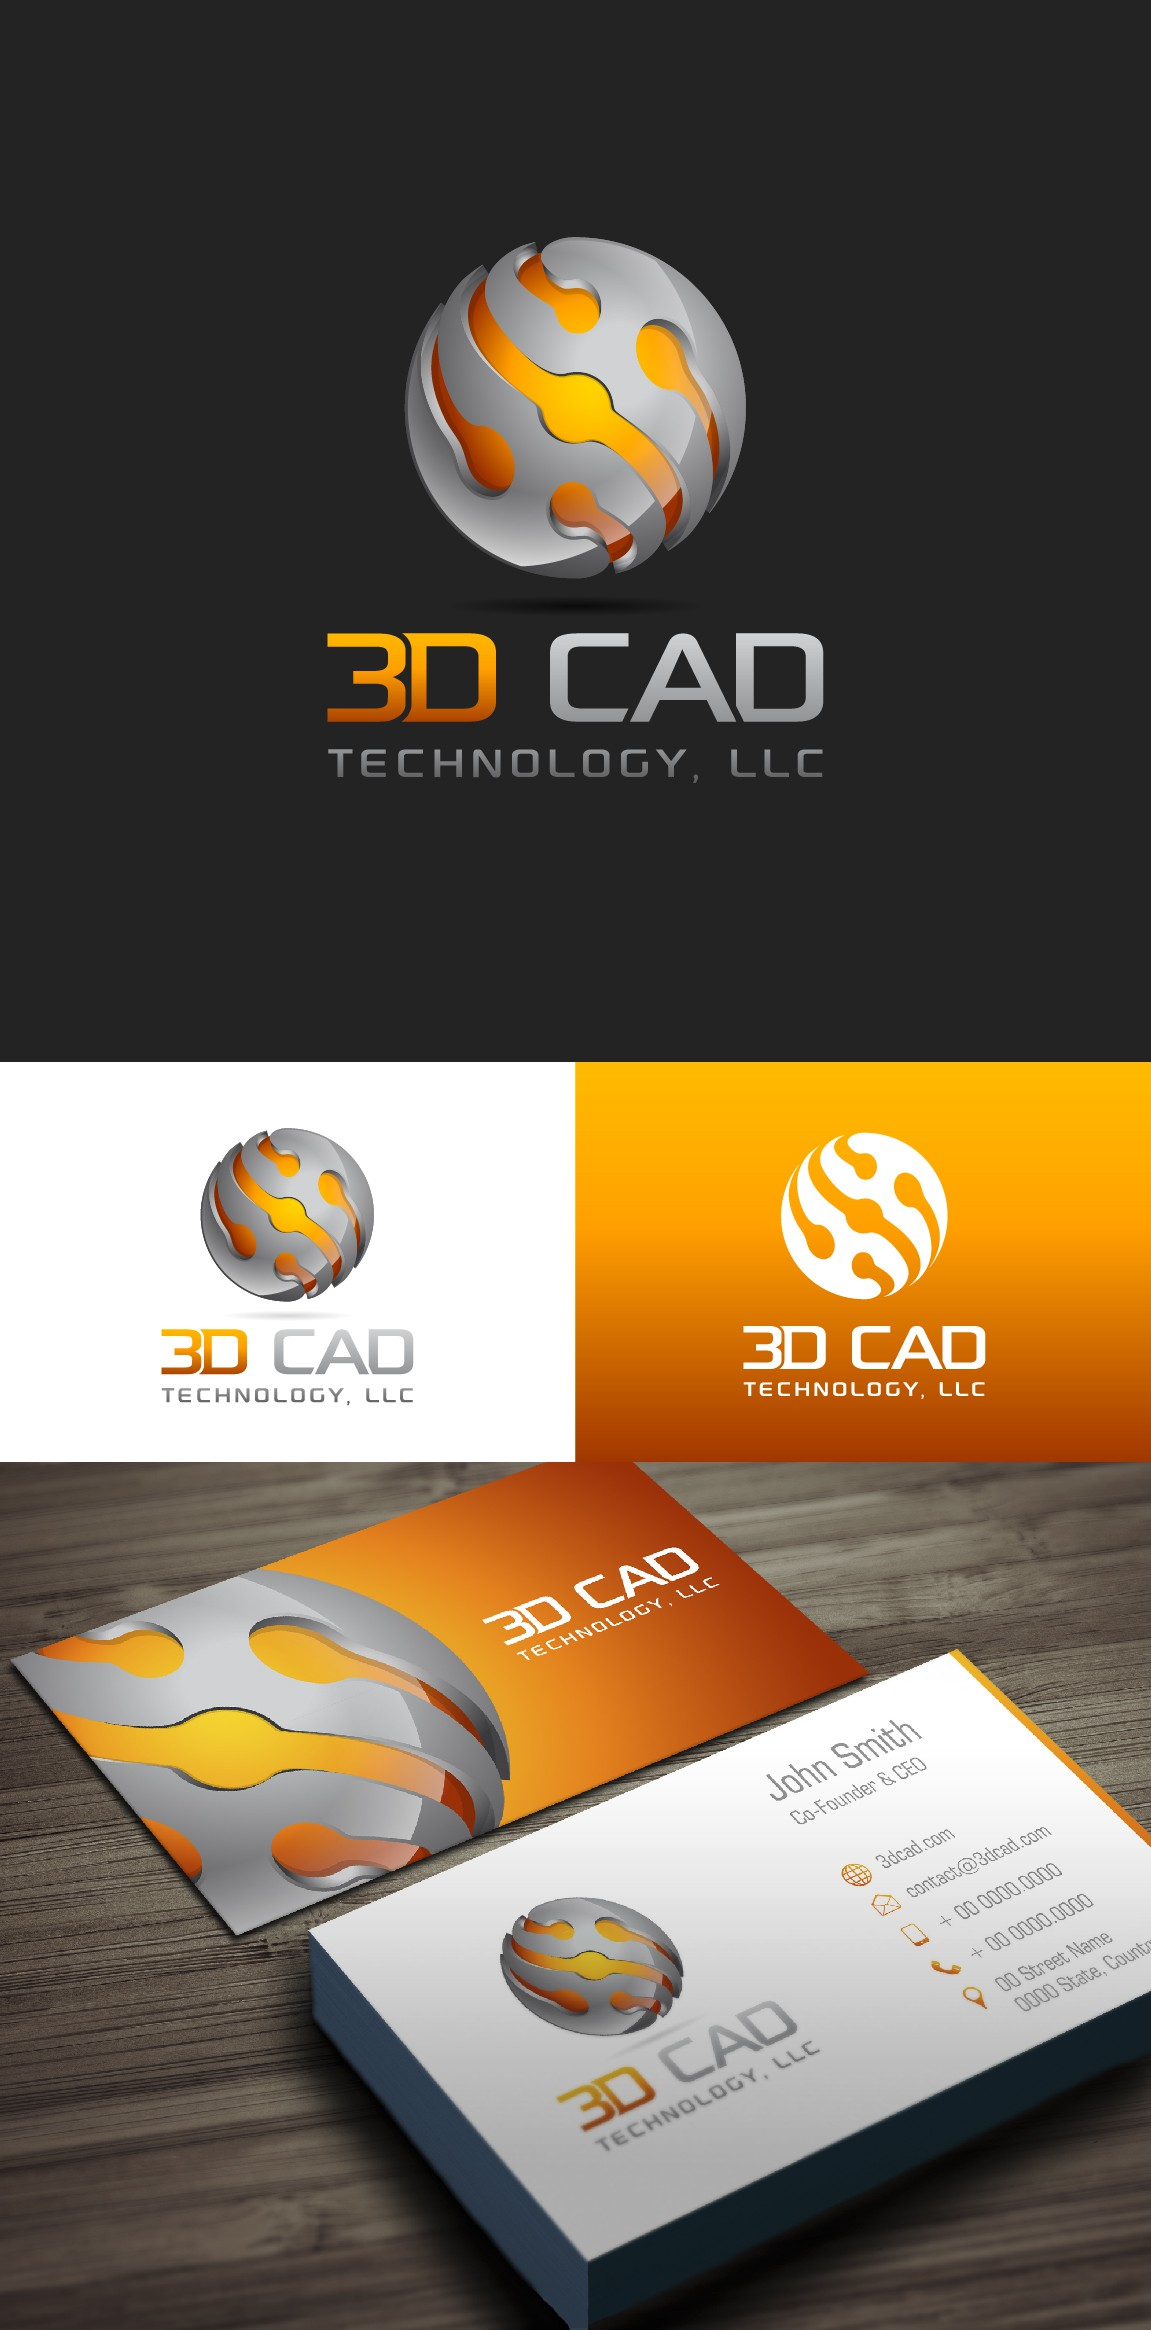 3D CAD Technology needs a new logo